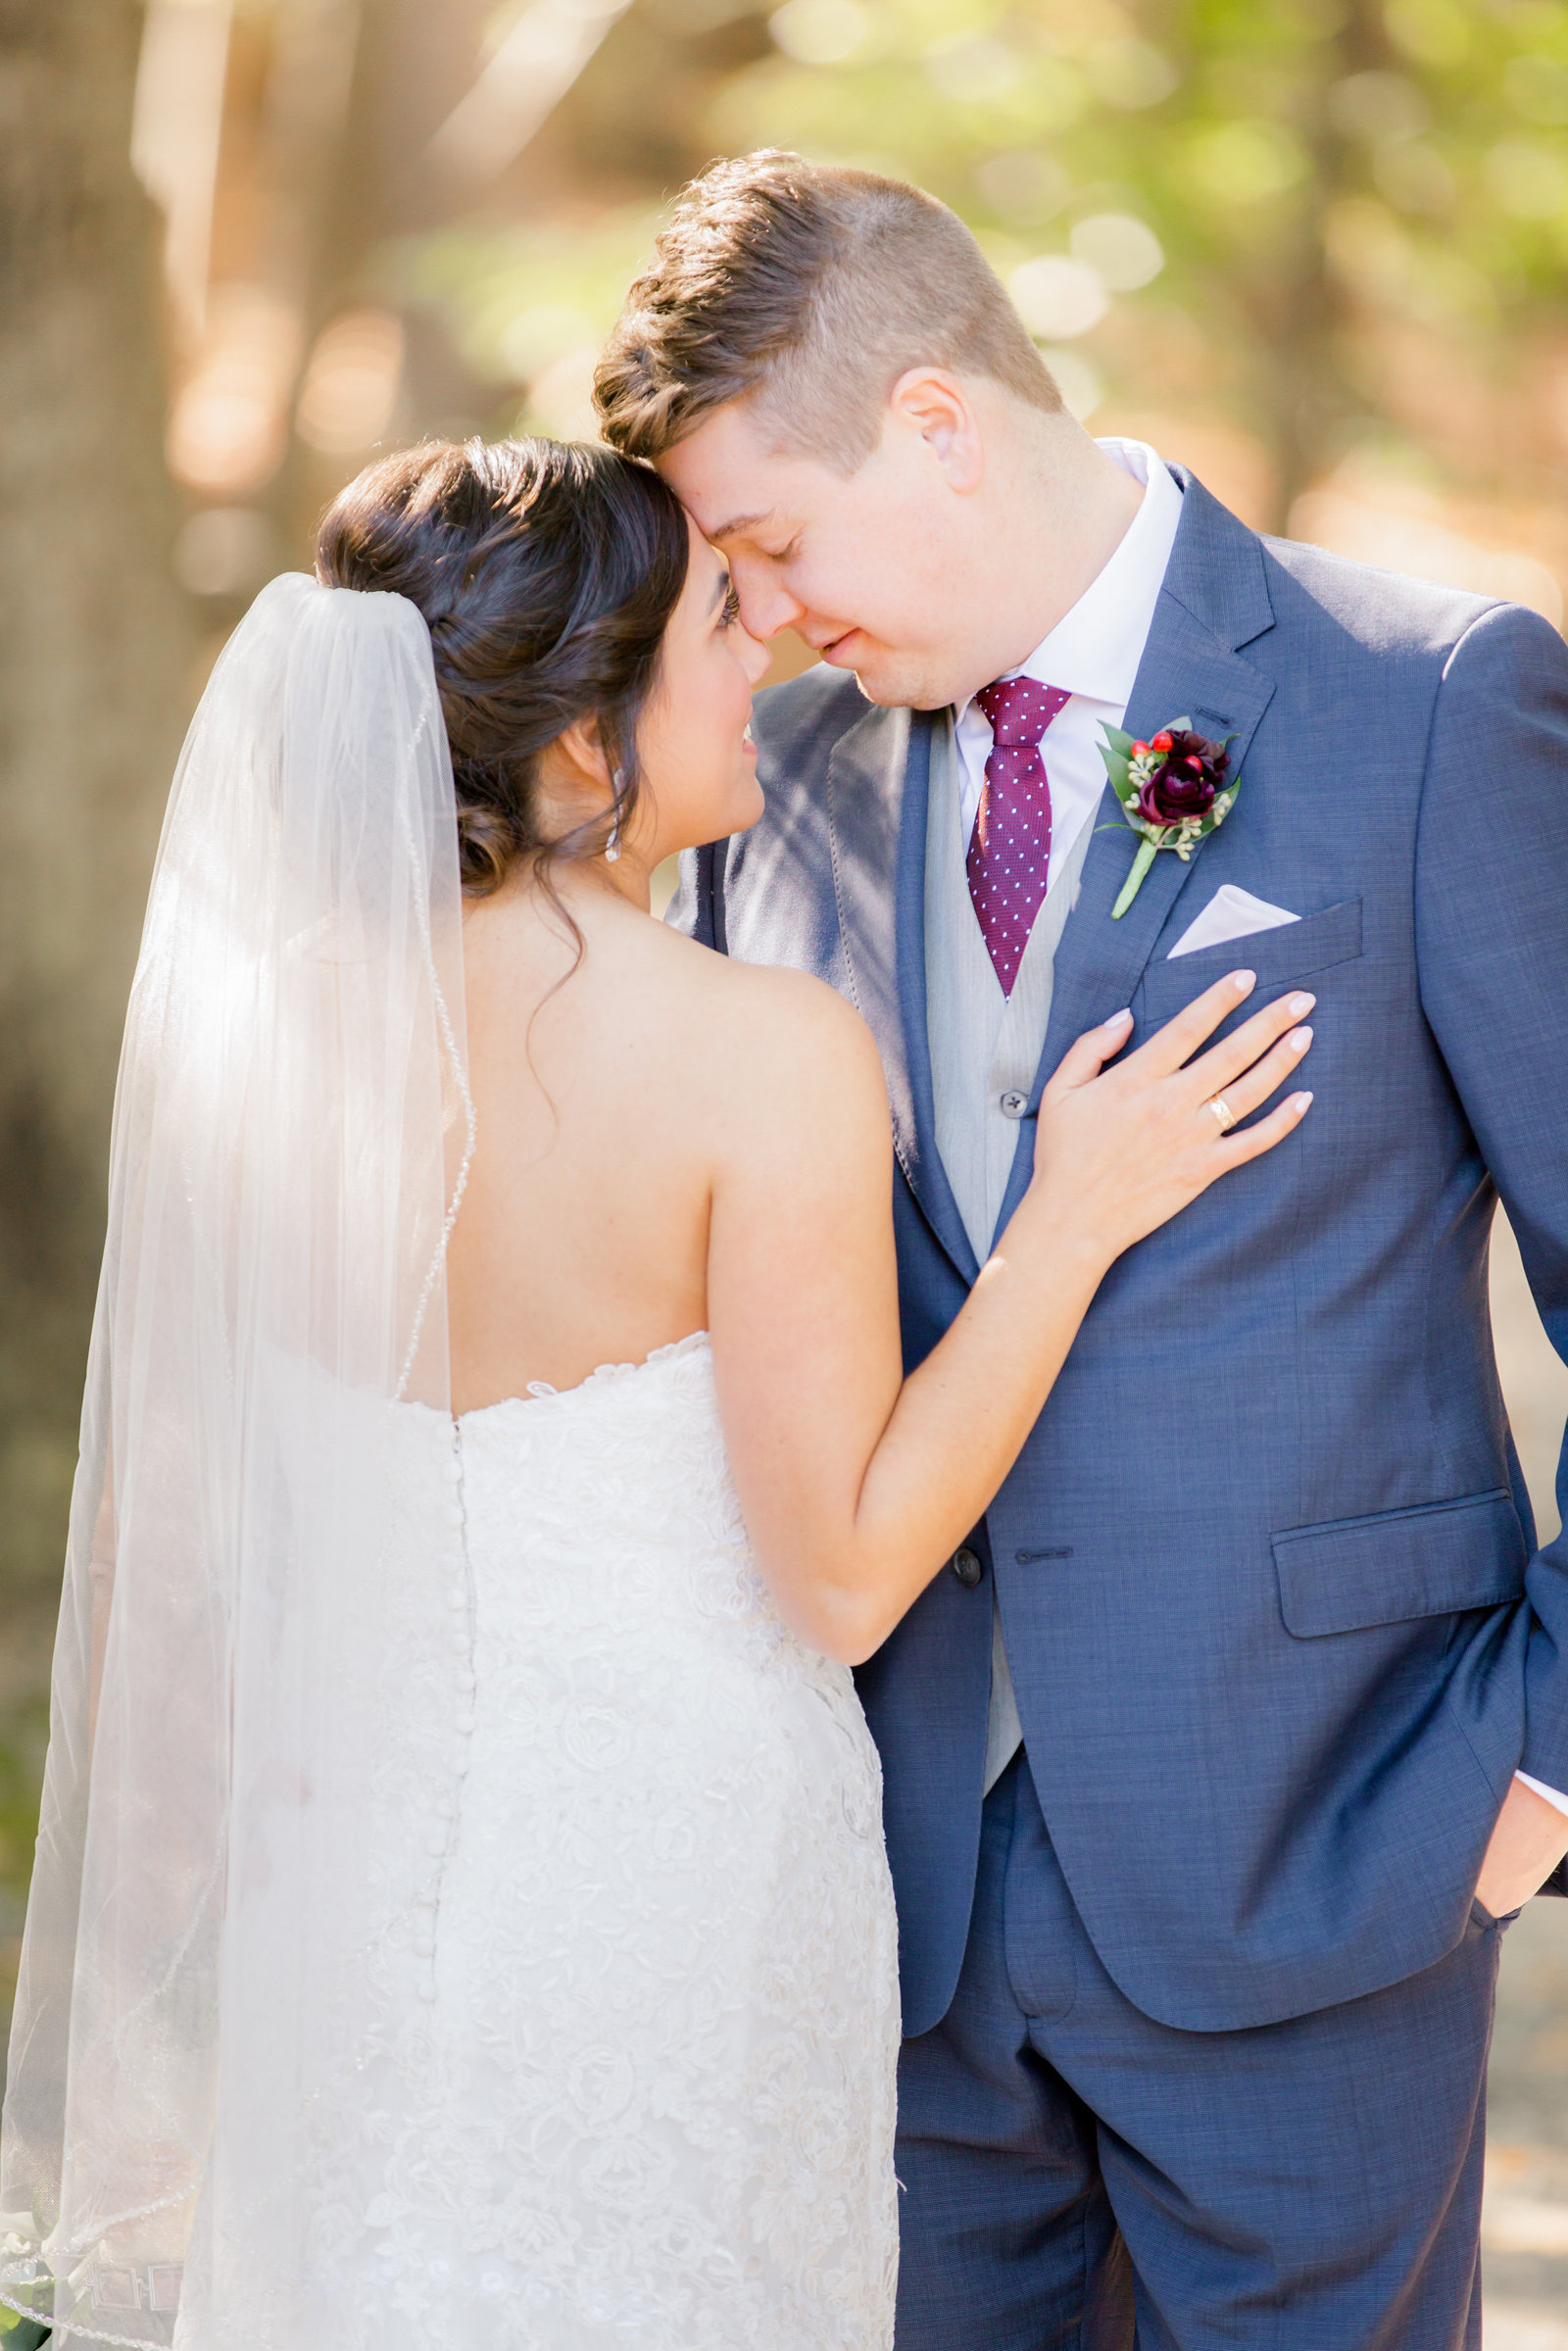 Romantic bride and groom photo at Meadow Wood Manor